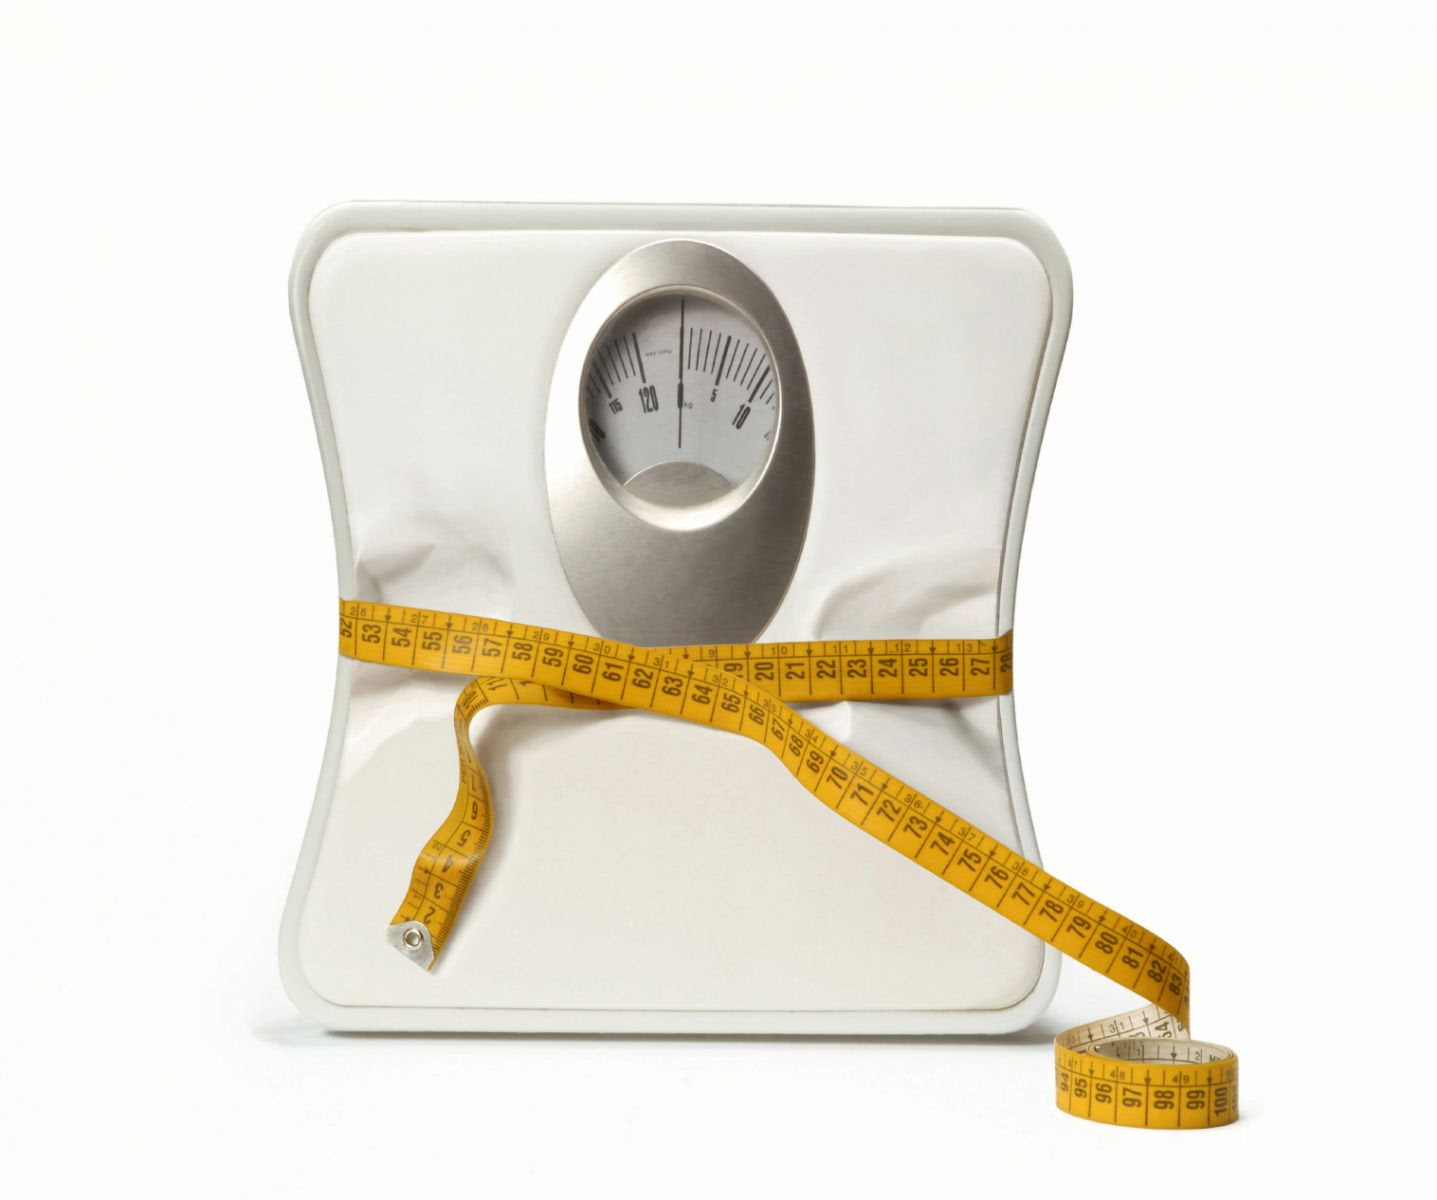 Find the weight-loss plan that works for you